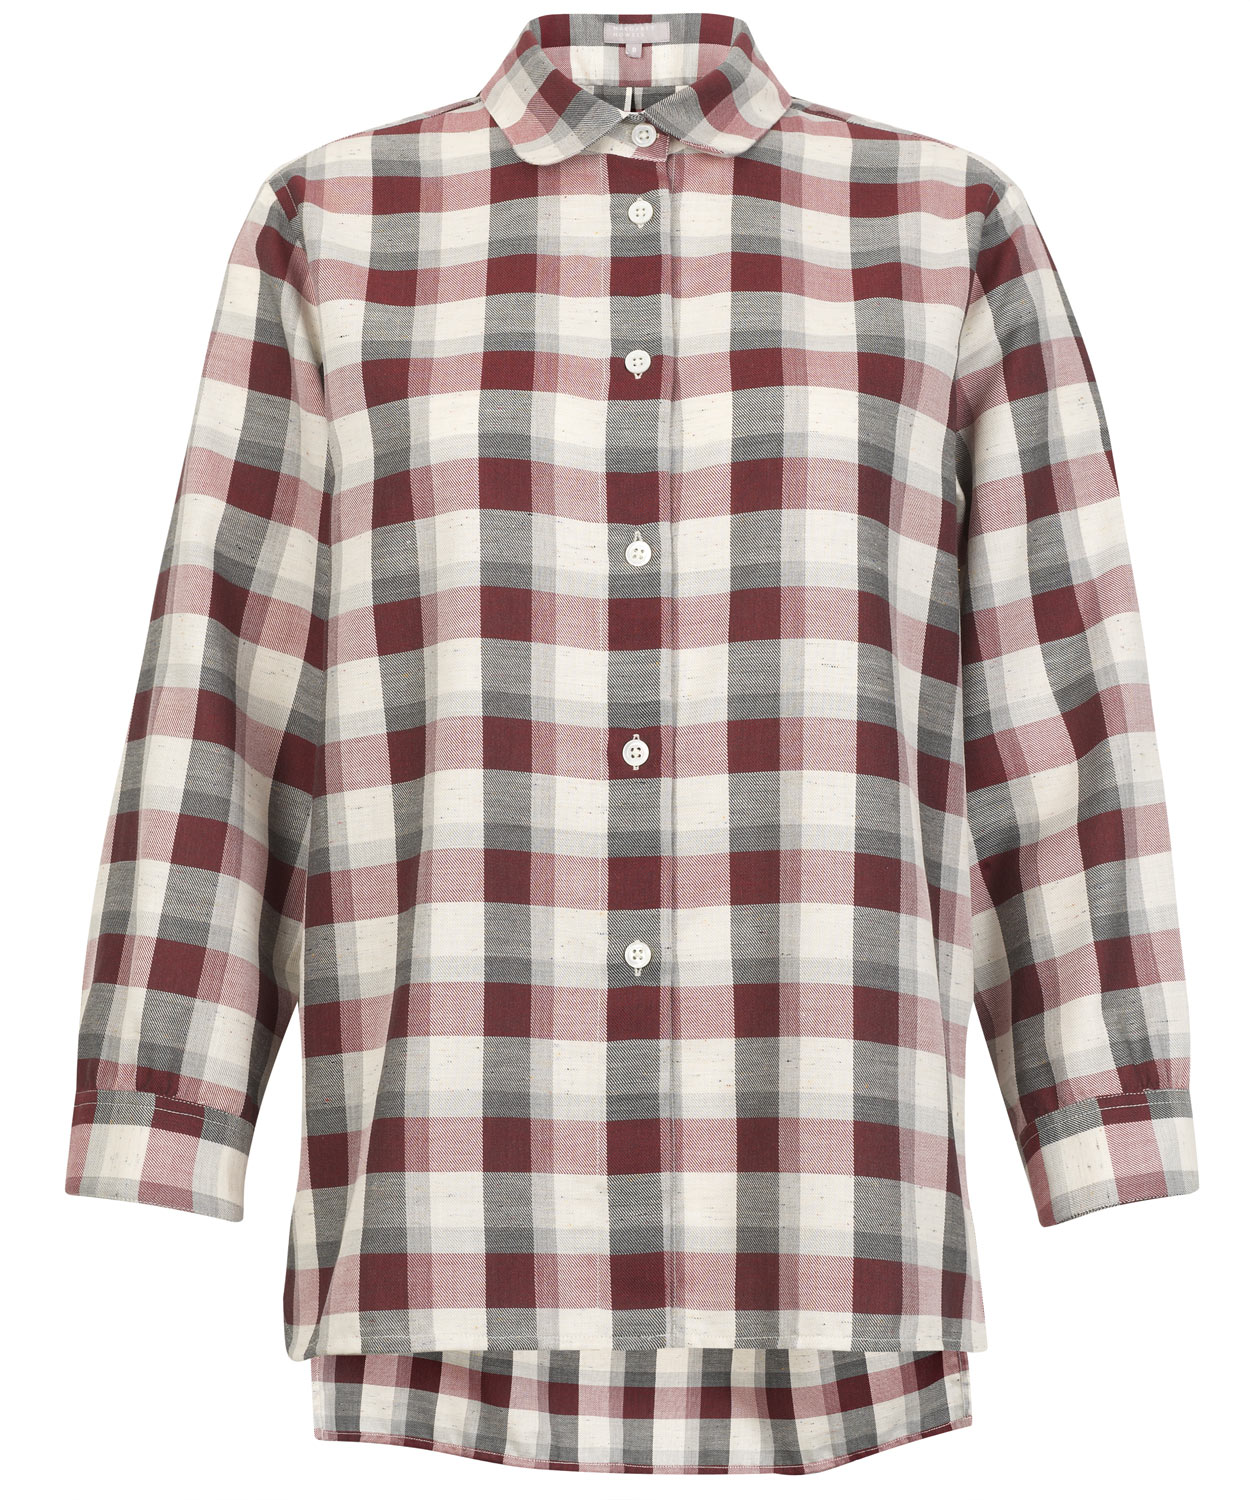 Lyst Margaret Howell Red And Grey Check Shirt In Red